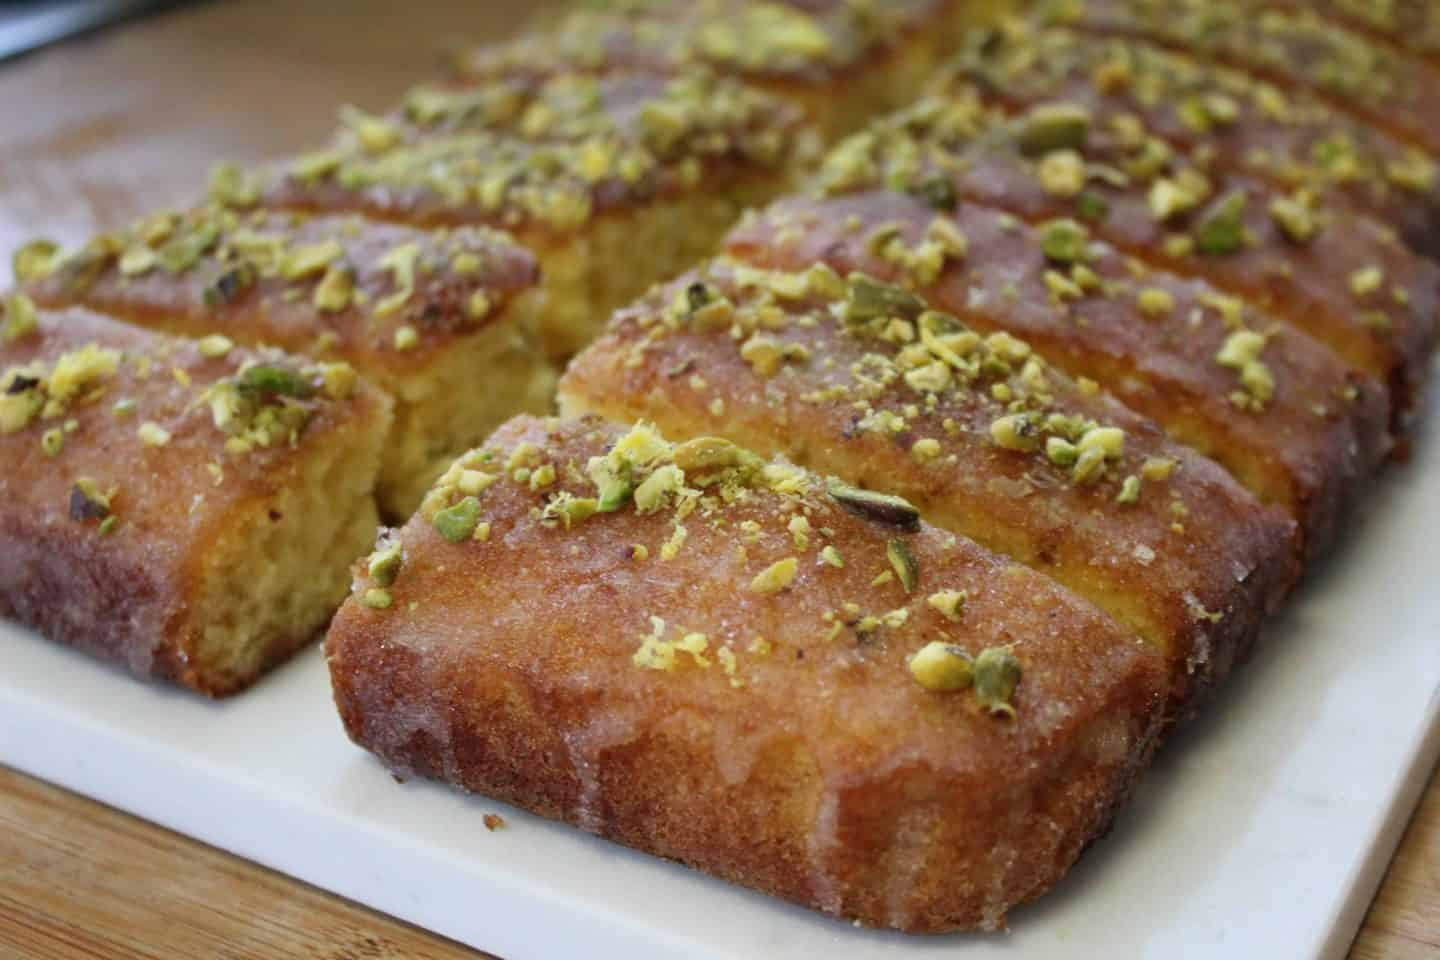 My gluten free lemon and pistachio drizzle cake